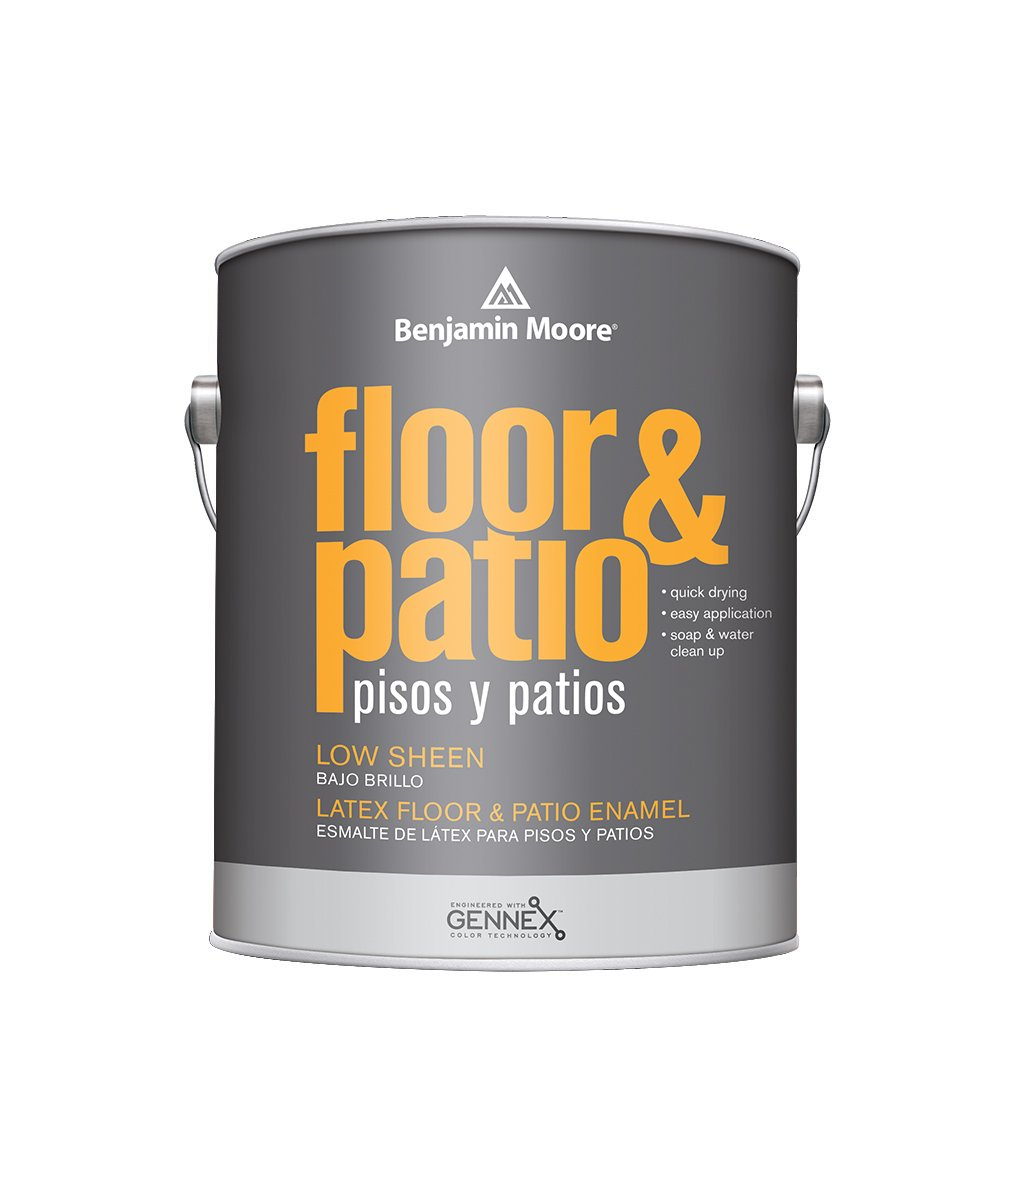 Benjamin Moore floor and patio low sheen Interior Paint available at Clement's Paint.